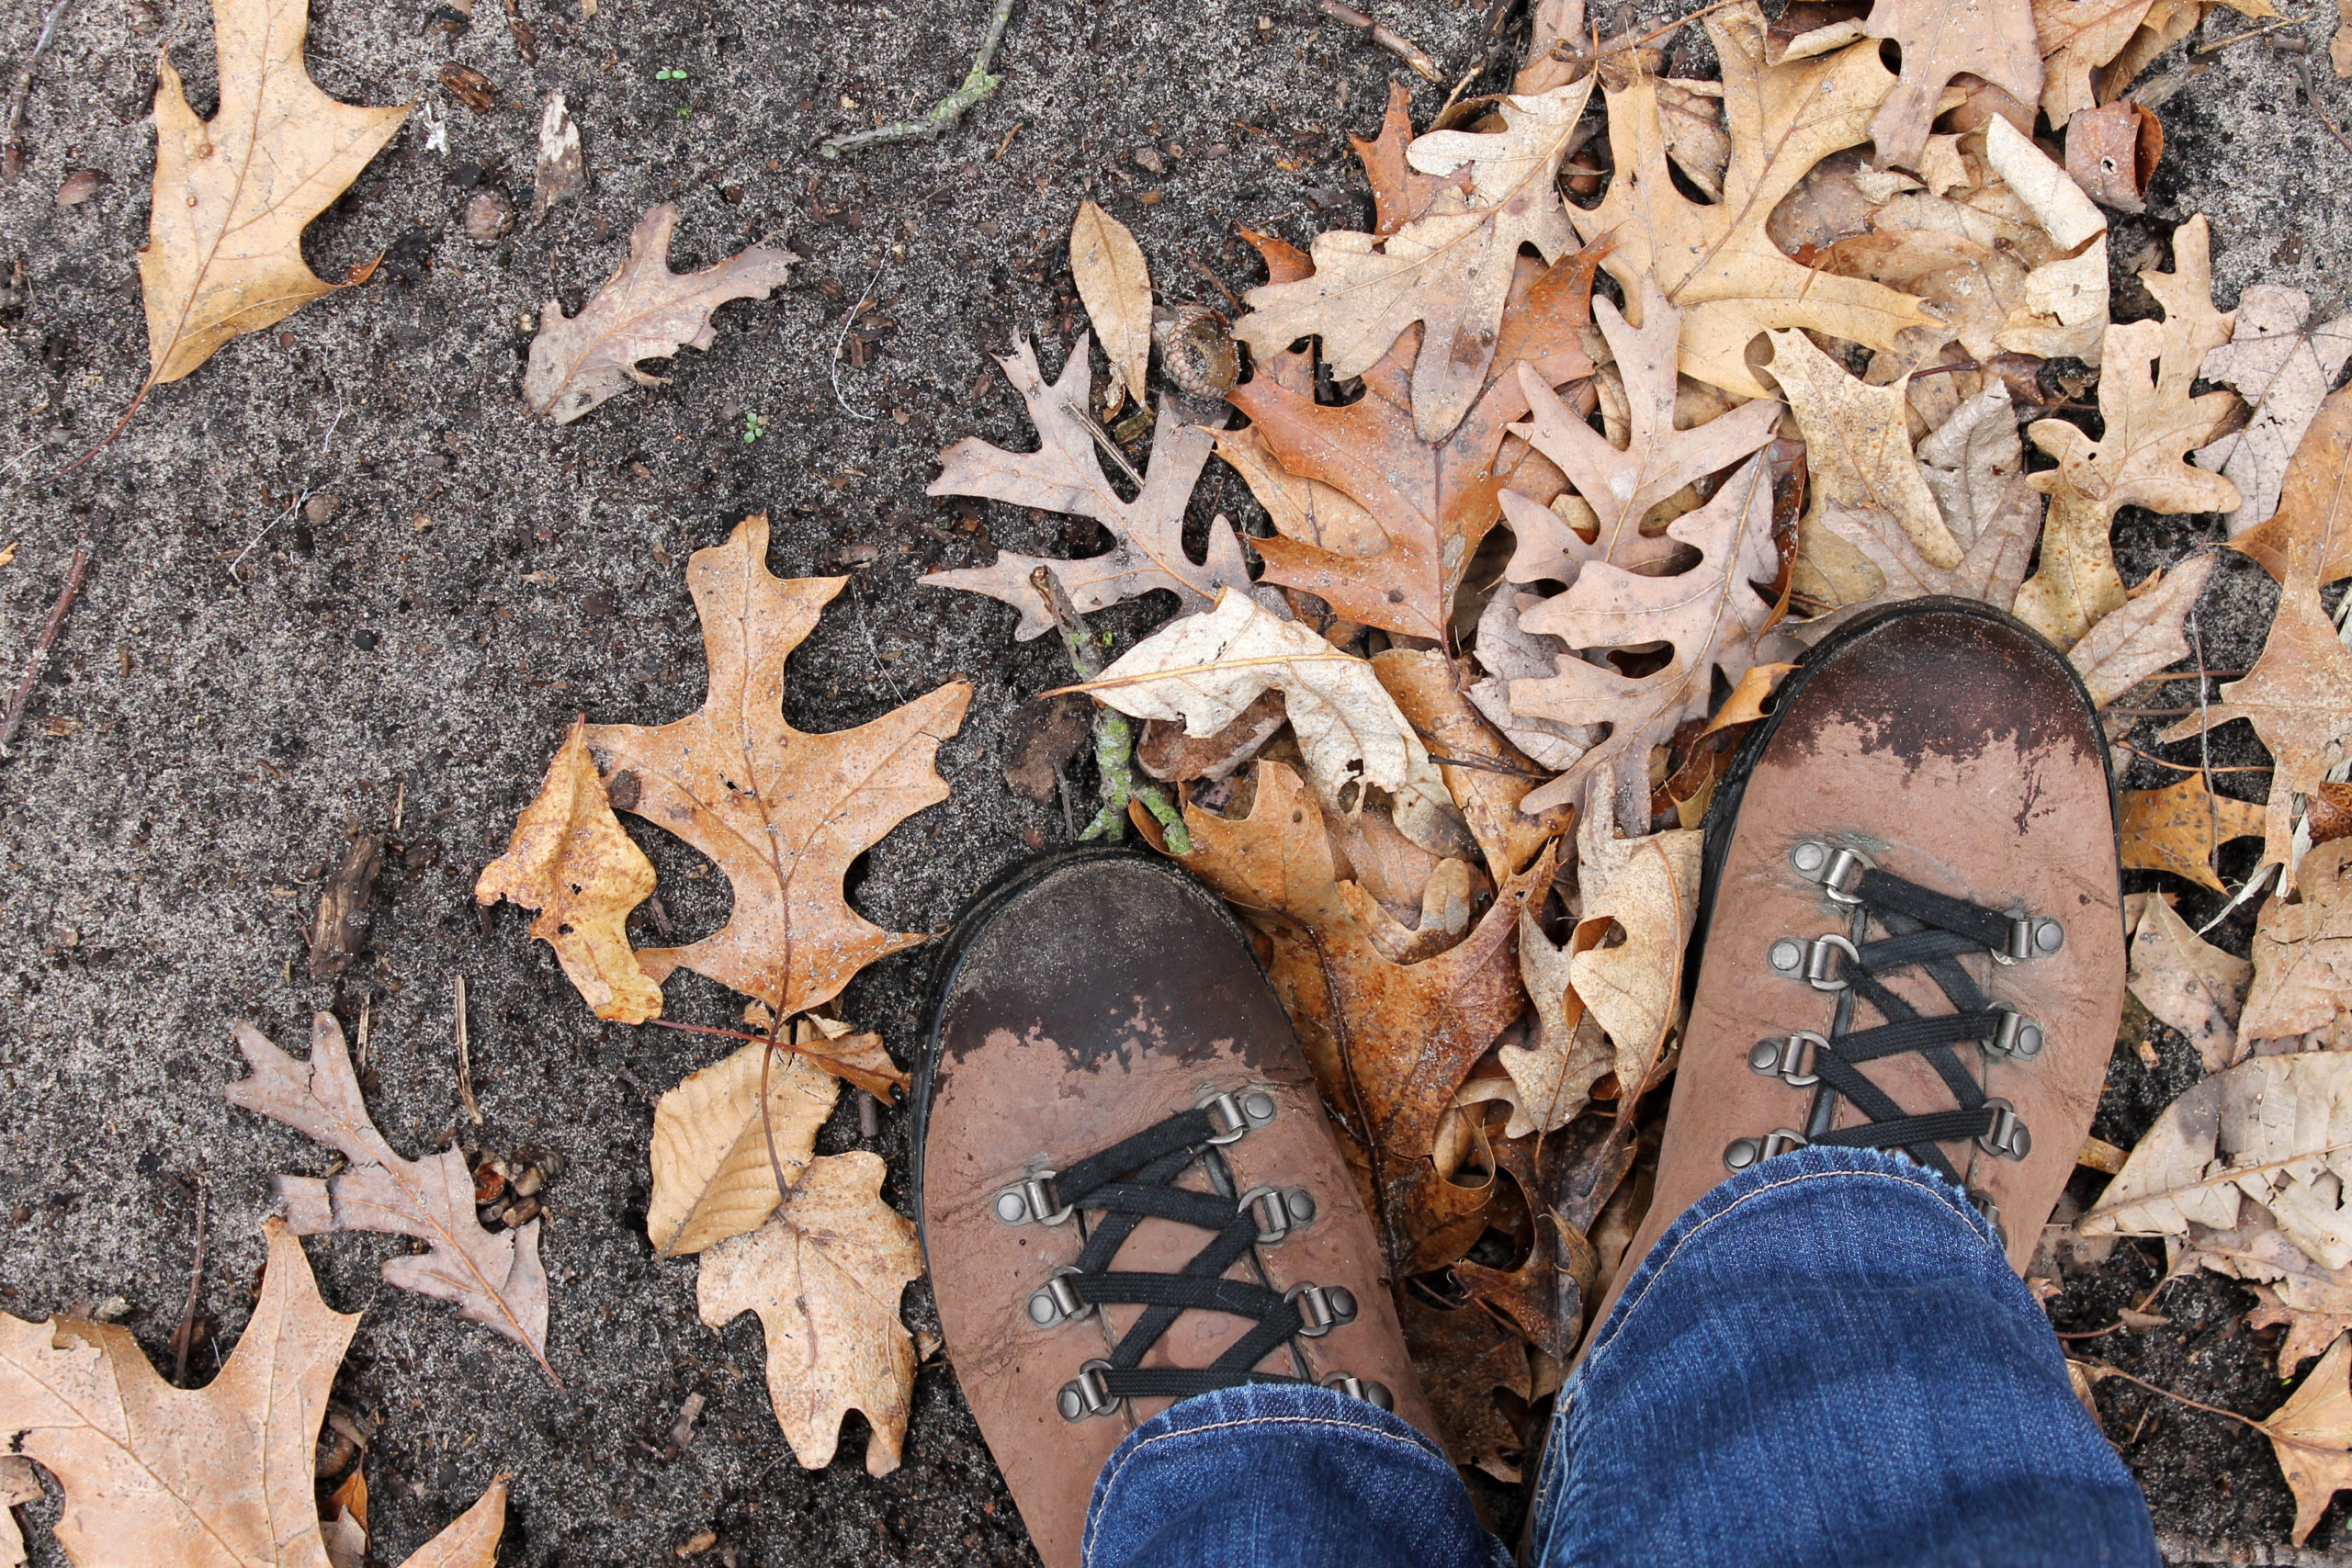 Hiking boots in a pile of leaves in autumn